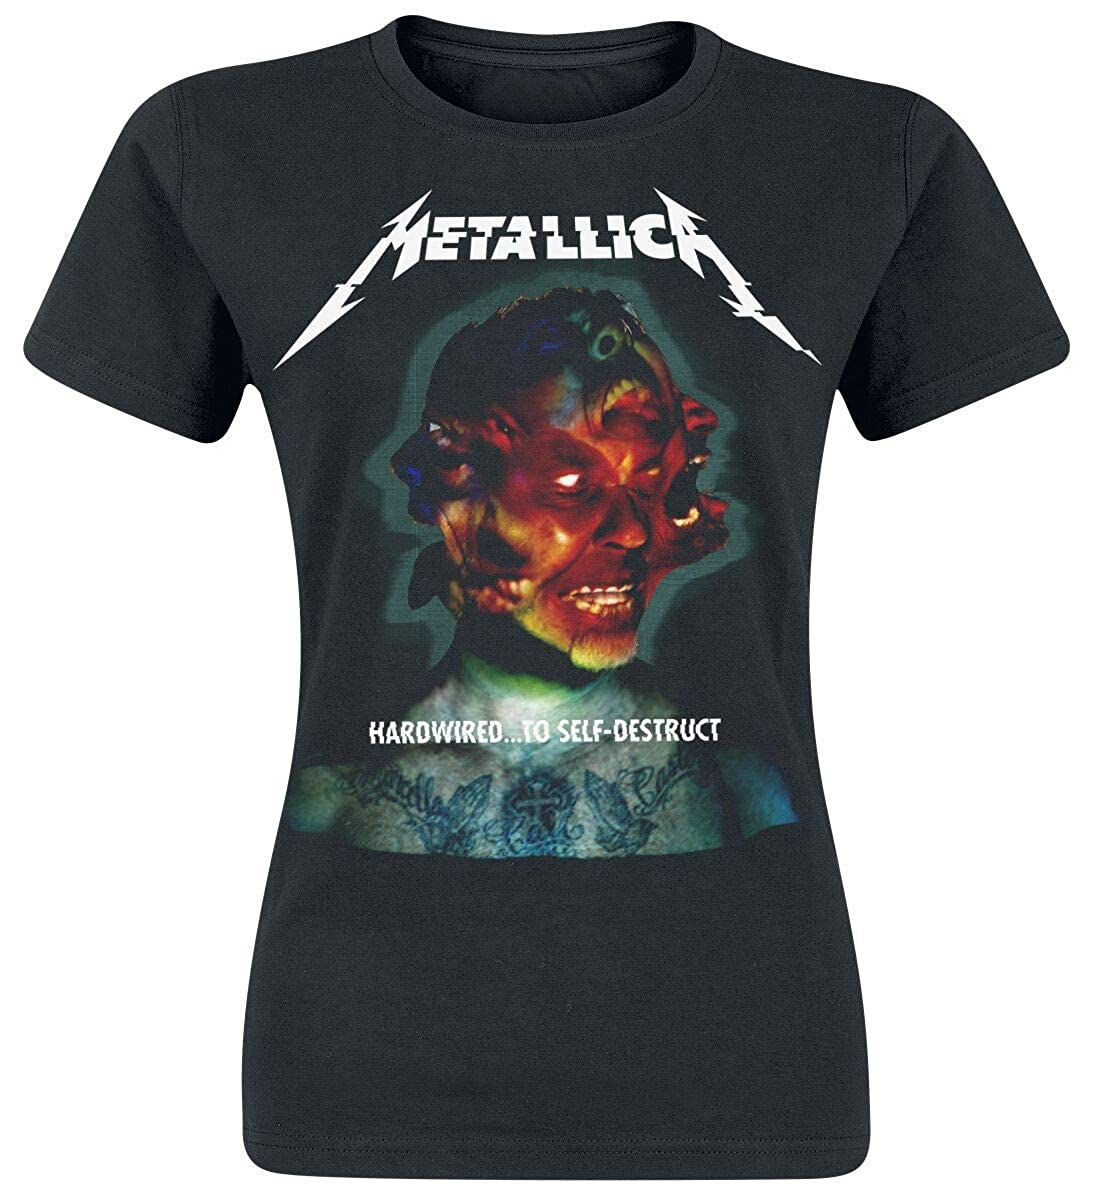 Metallica Hardwired.. Self-Destruct Camiseta Mujer Negro XXL